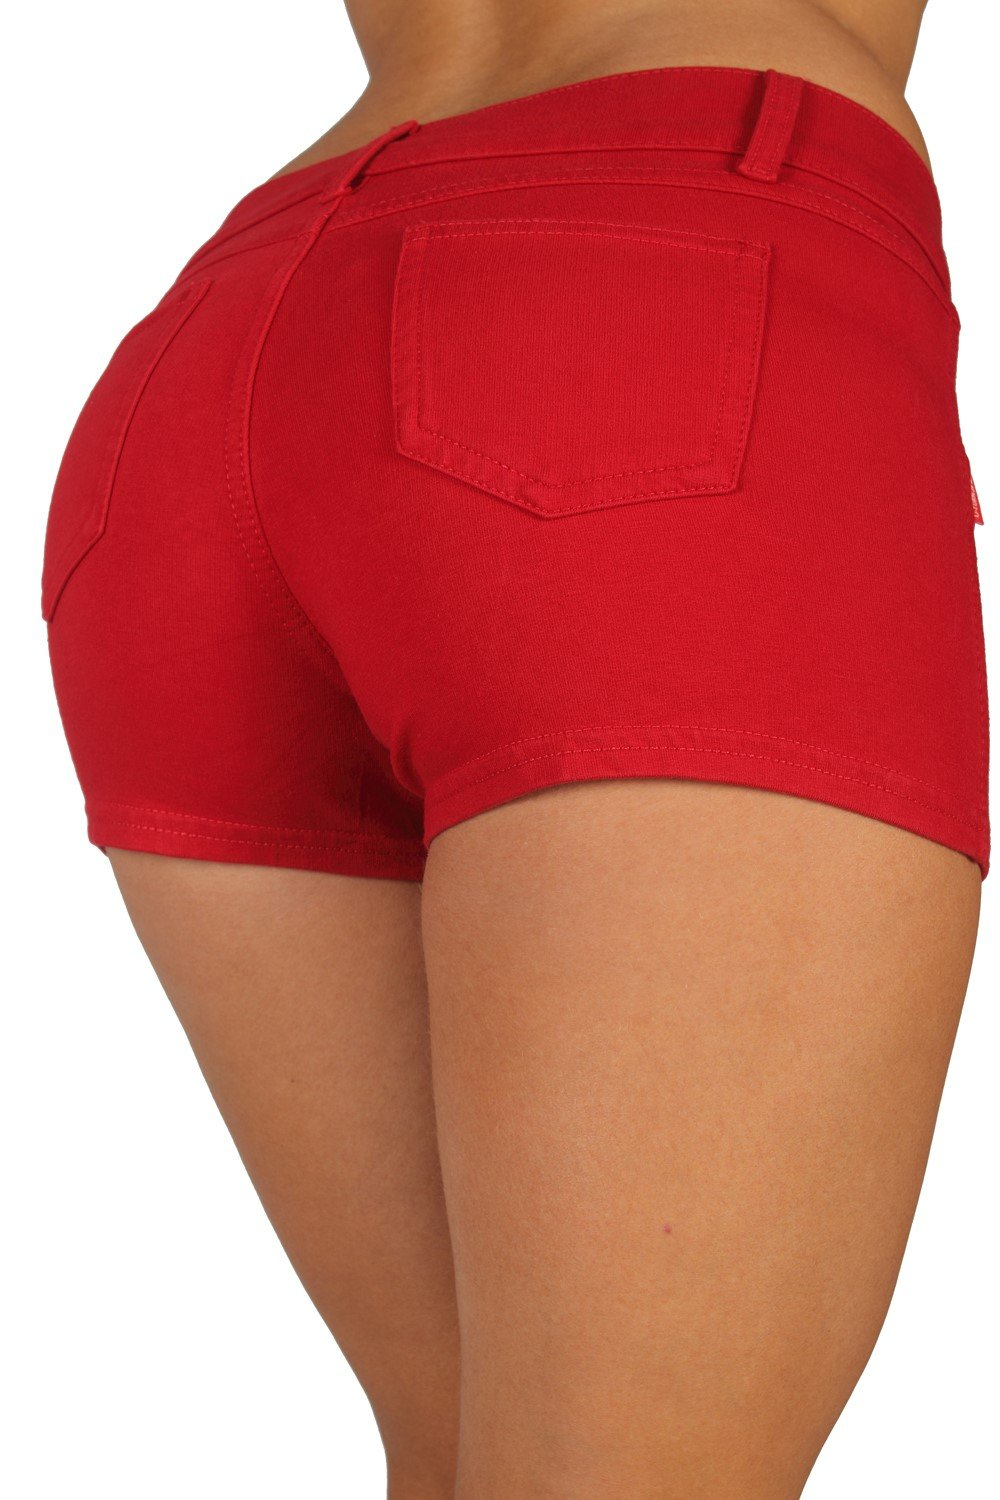 Basic Booty Shorts Premium Stretch French Terry Moleton With a gentle butt lifting stitching in Red Size M